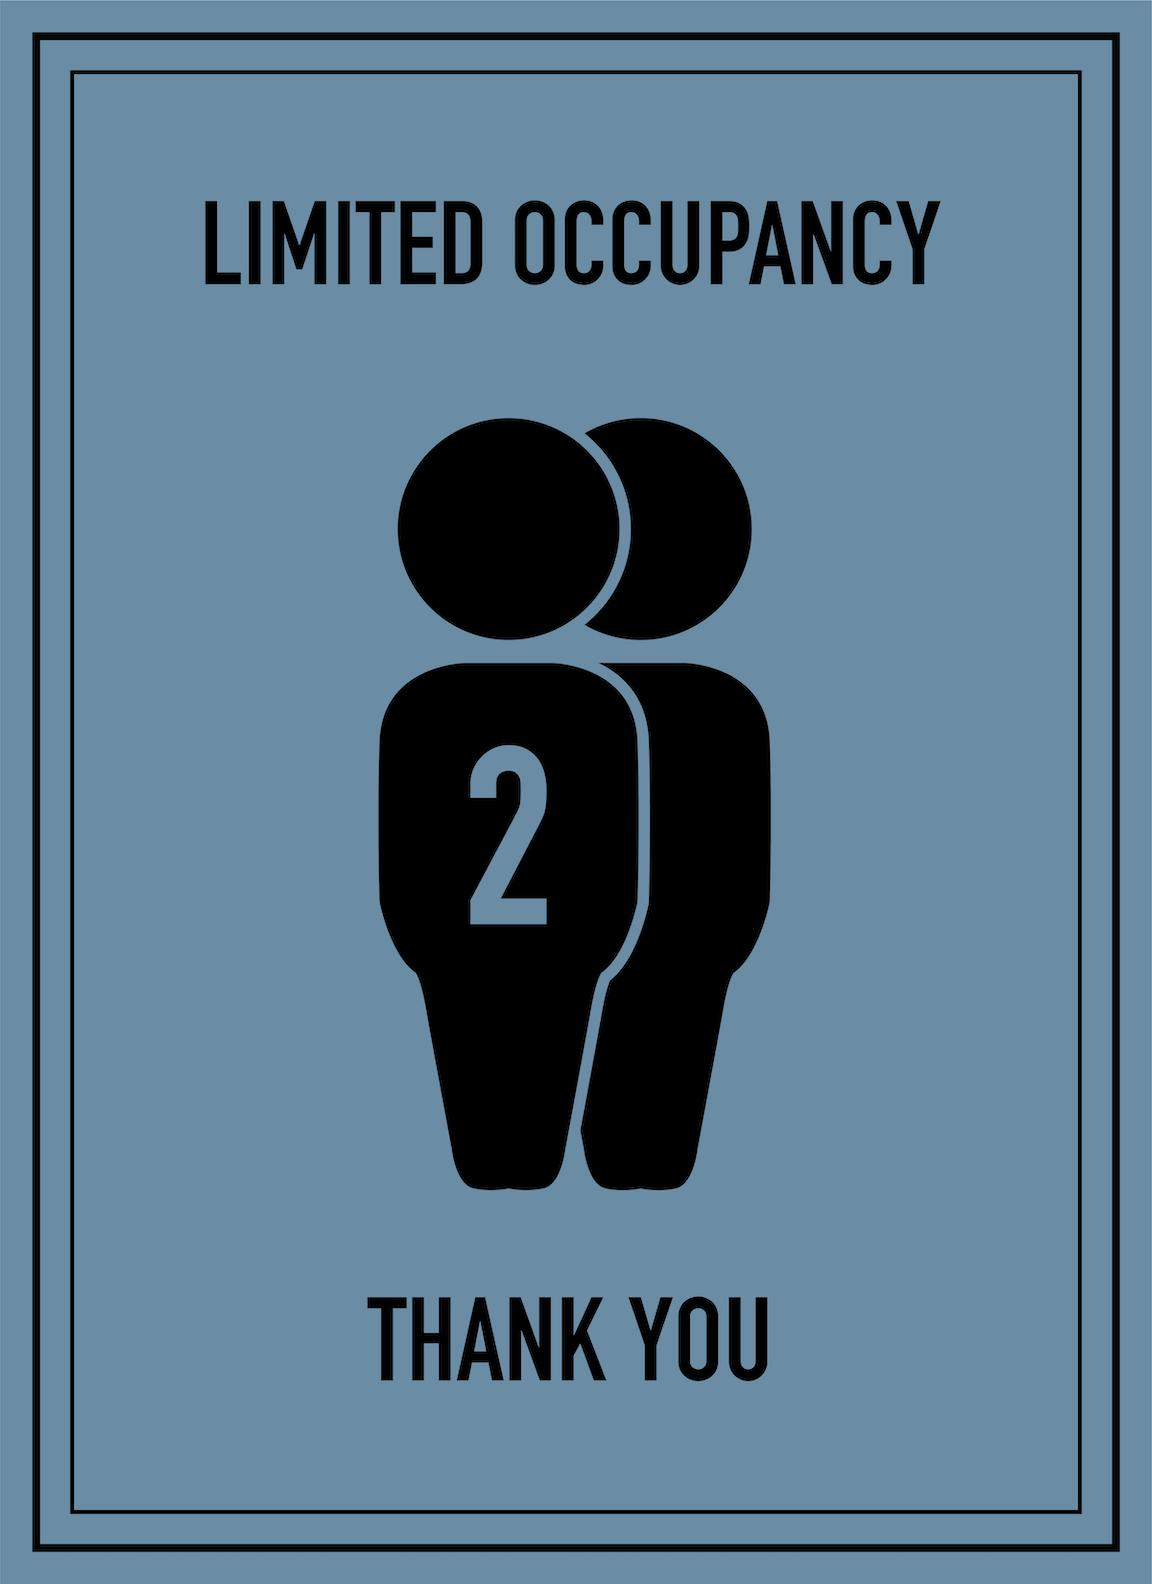 Limited Occupancy of 2-Poster-indiesigns